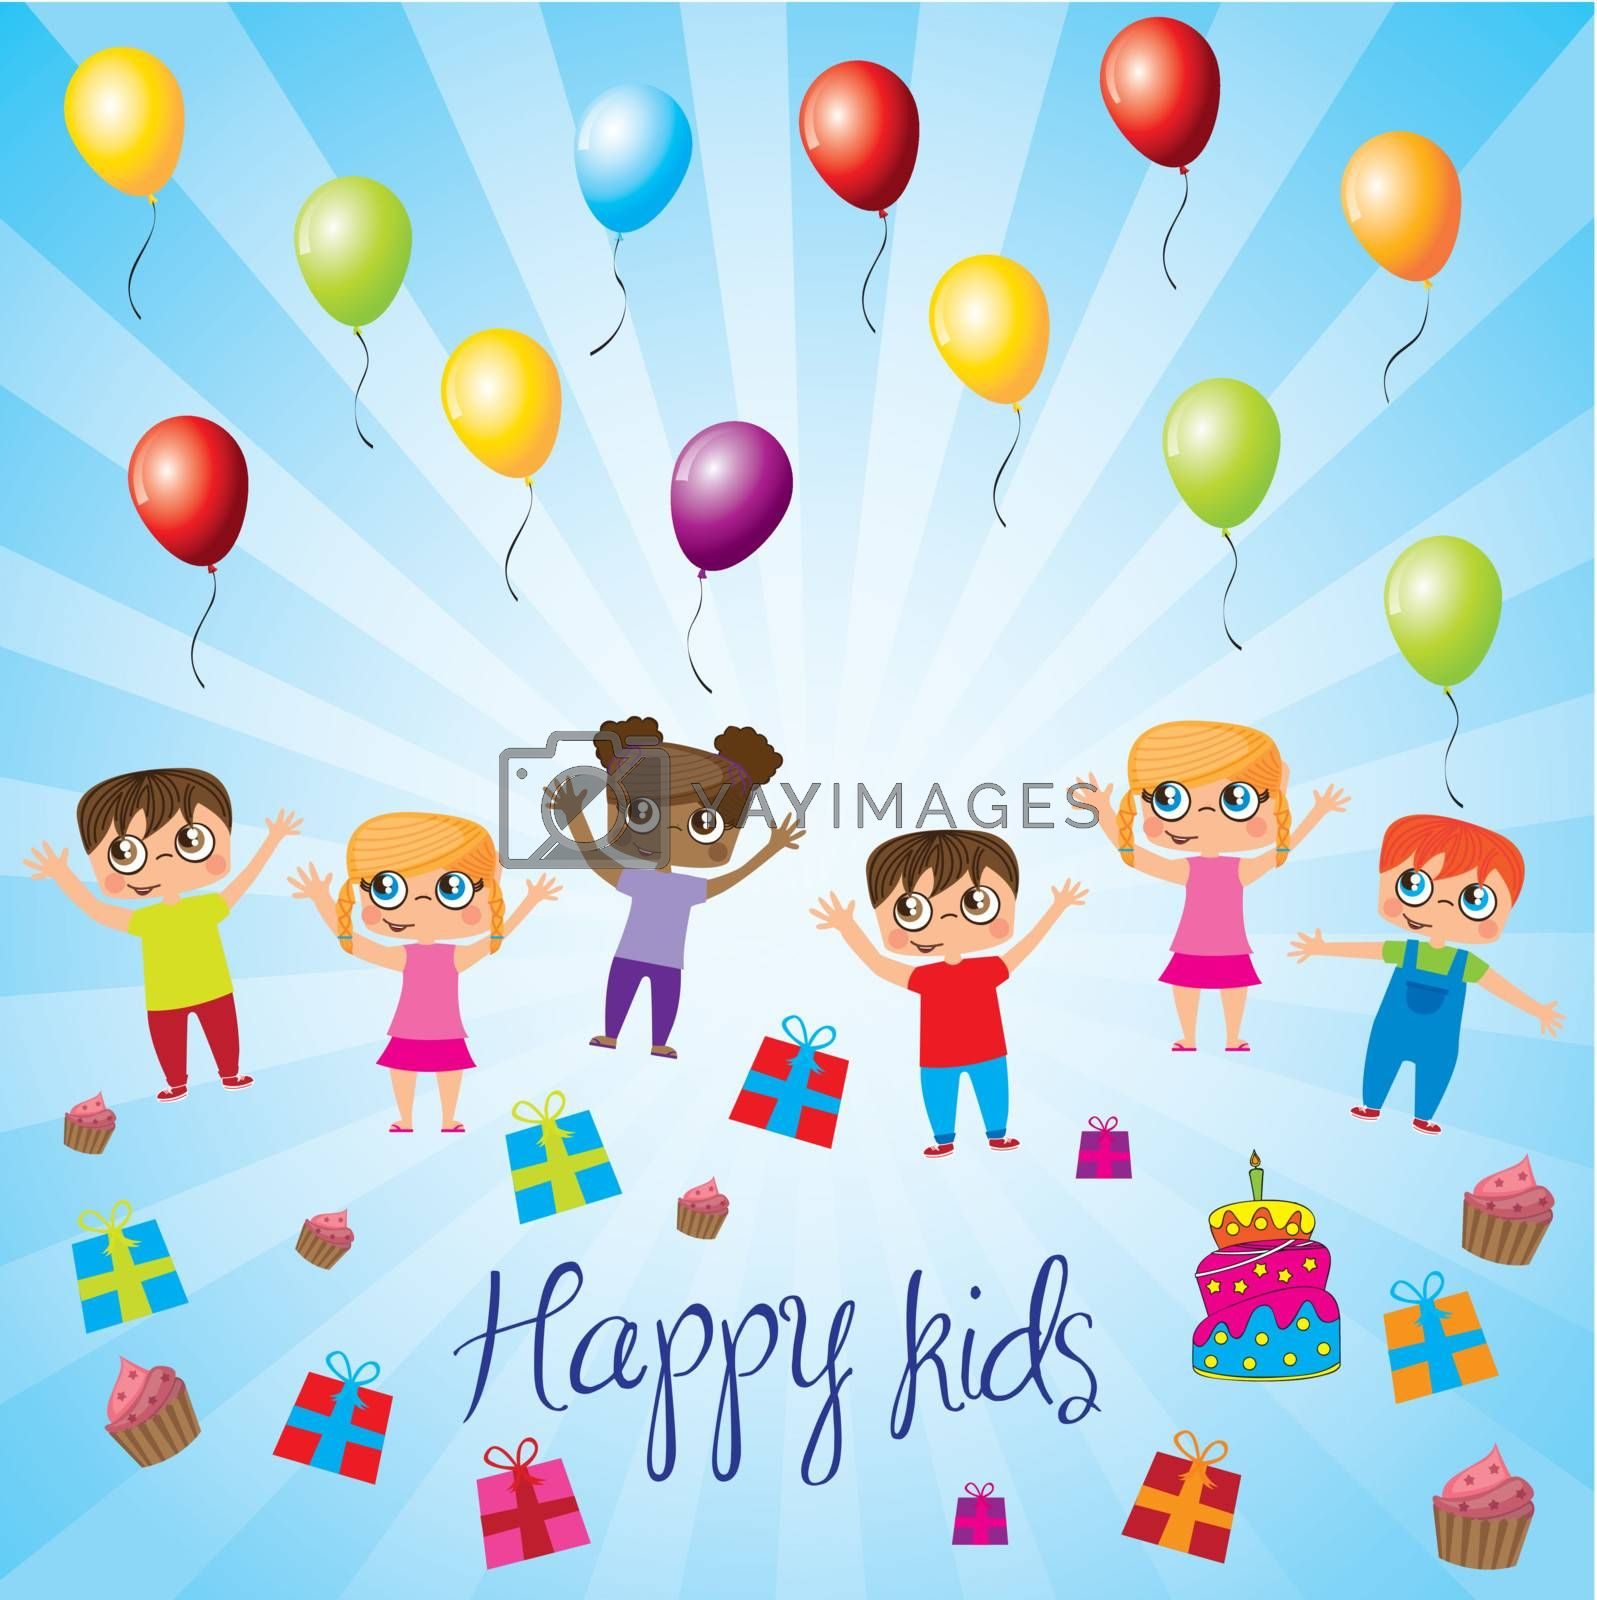 Happy kids with balloons,gift and cake over blue background